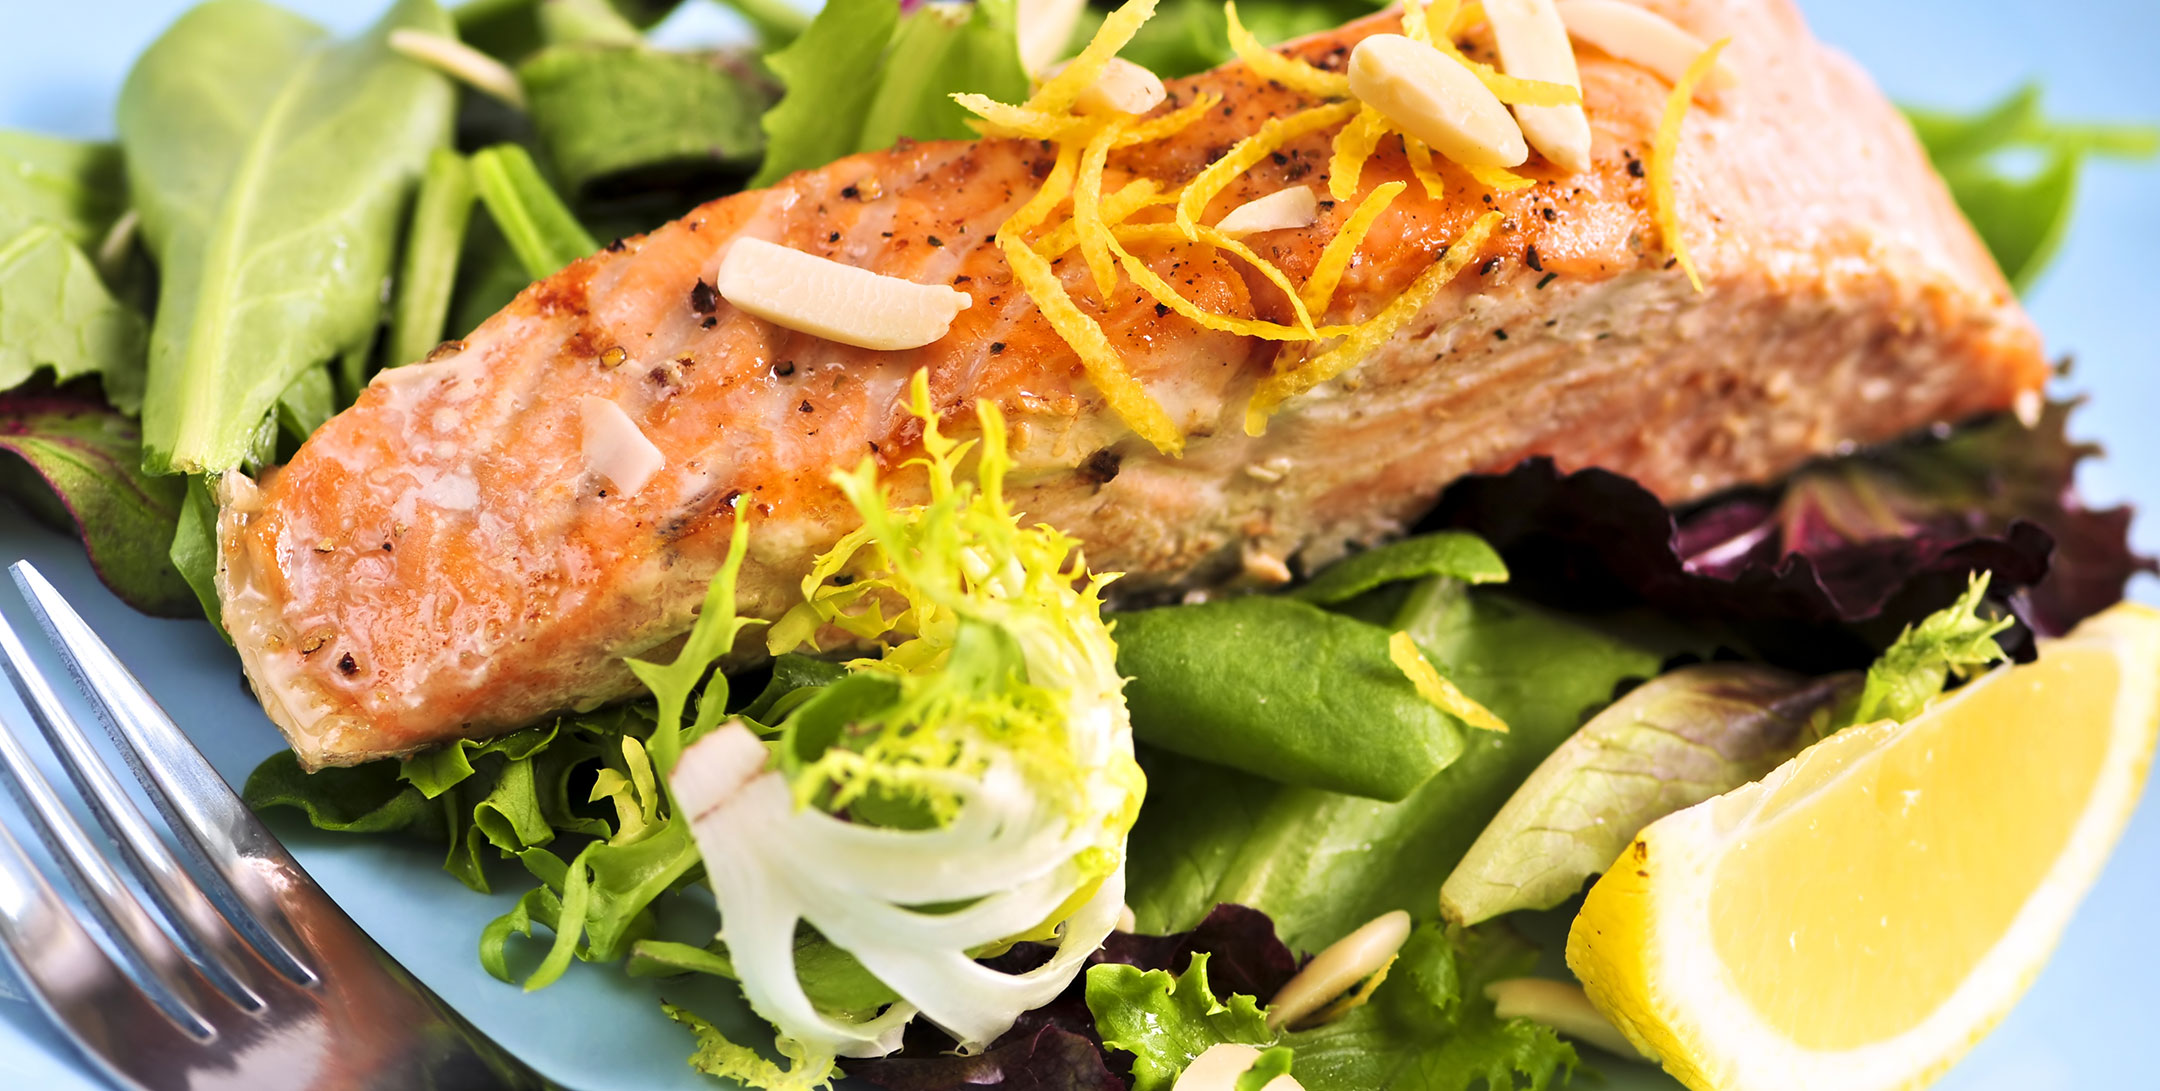 Grilled Salmon Salad with Dill Dressing